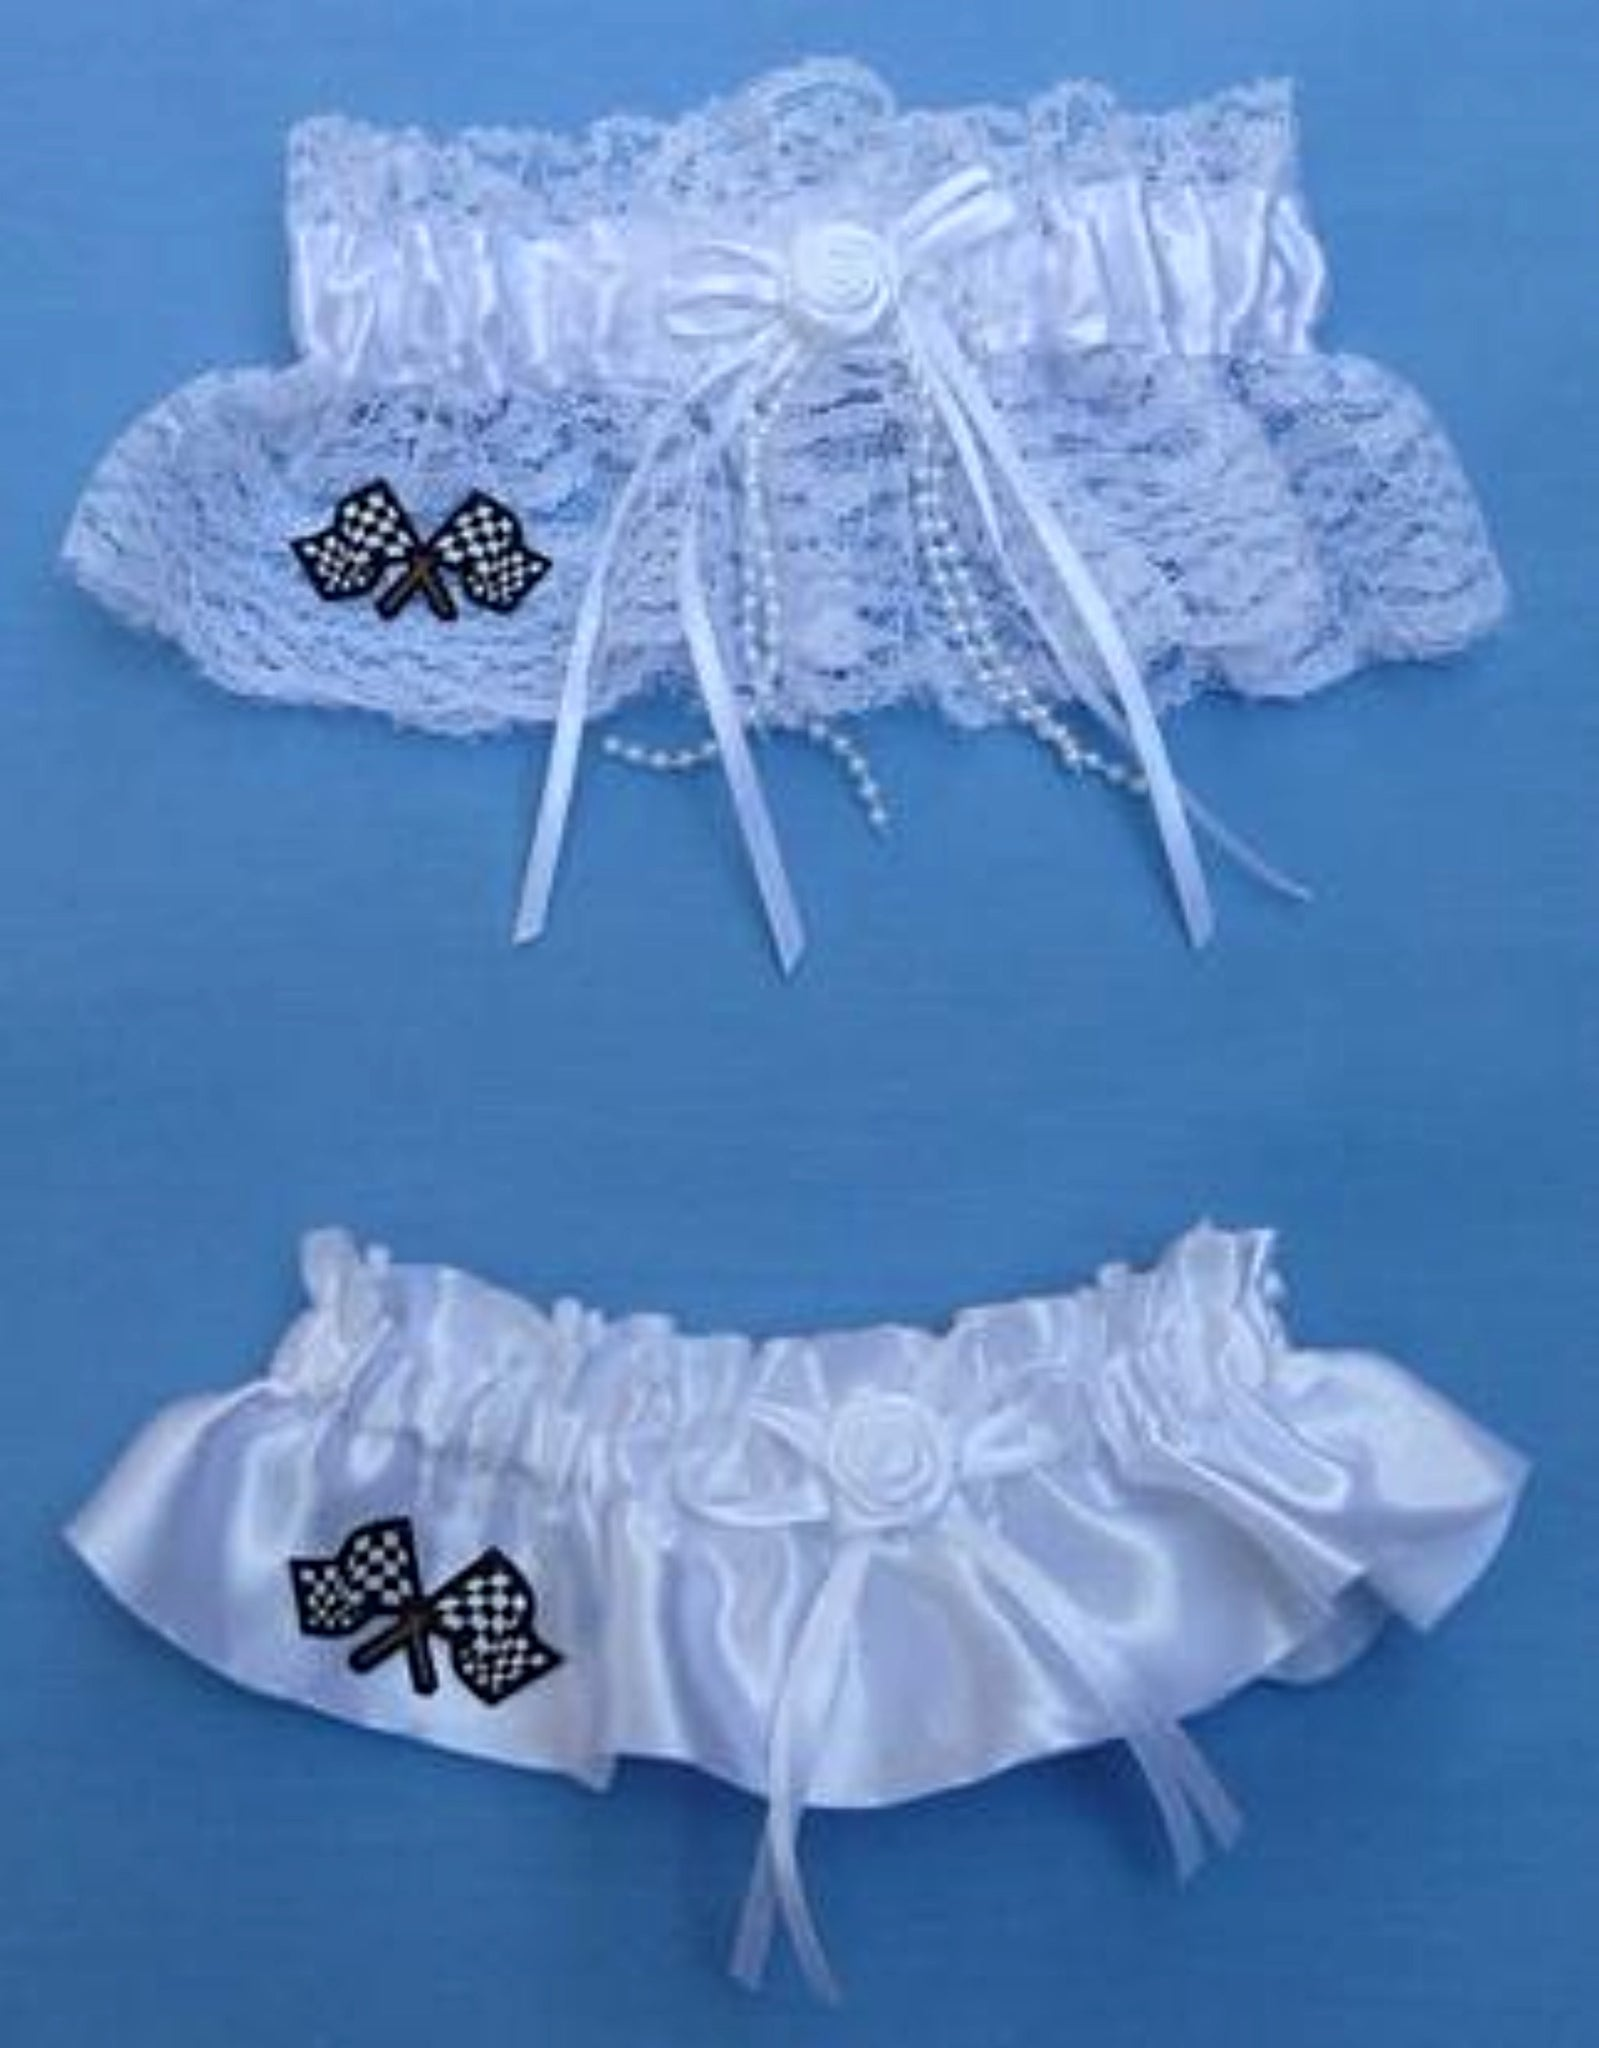 Checkered flag wedding garter racing car NASCAR sports racer fans funny lace satin reception toss keepsake Fun Wedding Things sports